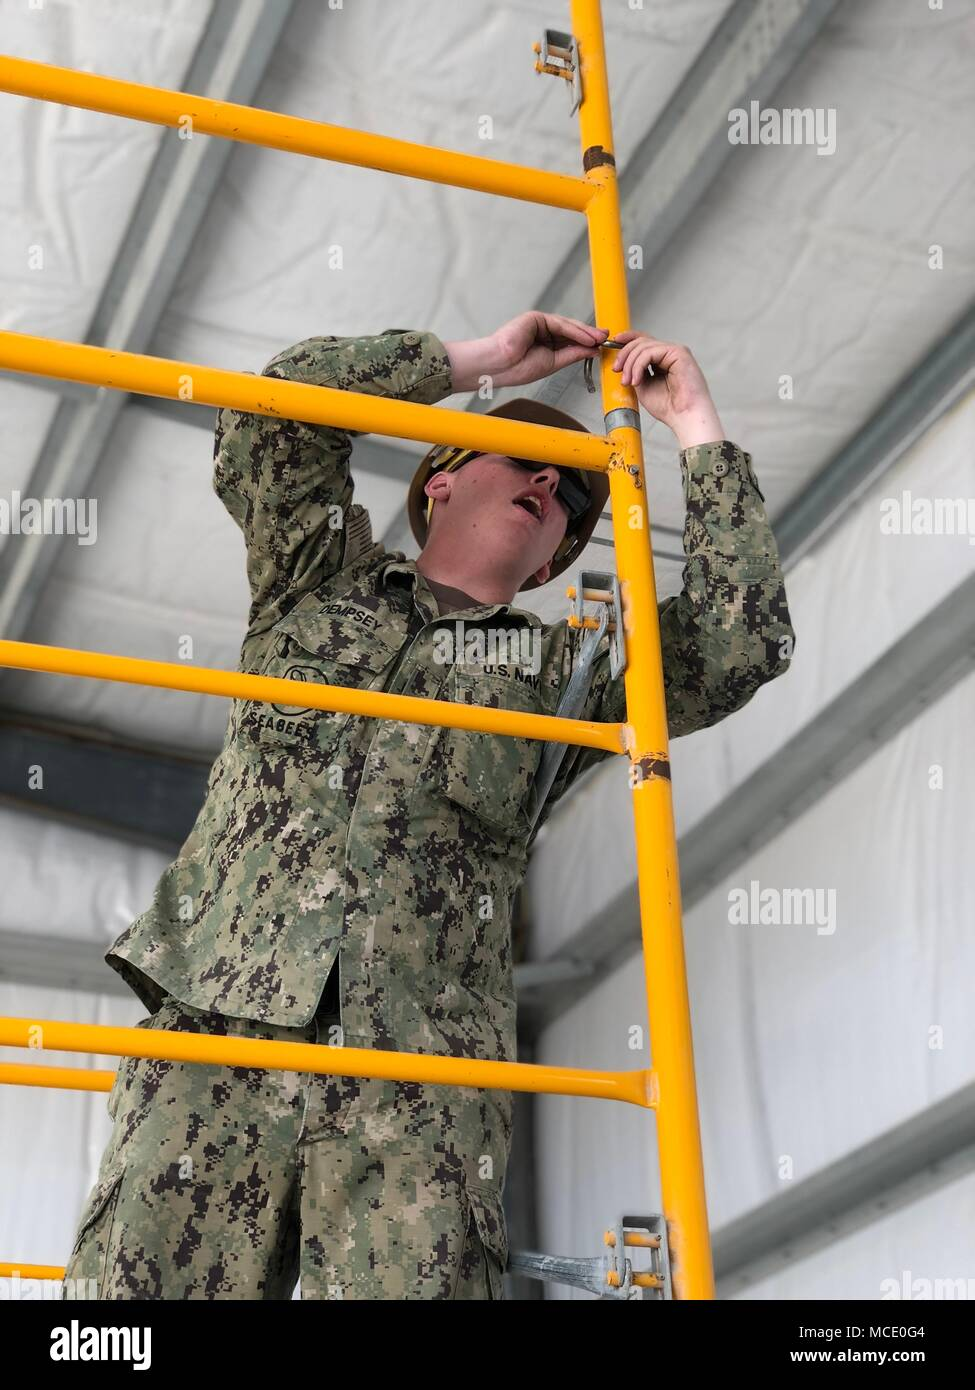 Builder Constructioman Andrew Dempsey, a Seabee assigned to Naval Mobile Construction Battalion (NMCB) 11, helps assemble scaffolding for rollup door installation in the alpha pre-engineered building. NMCB 11 is homeported in Gulfport, Mississippi, and is part of the Naval Construction Force (NCF). They currently have personnel assigned to more than 15 locations world-wide, performing a variety of missions in support of the Navy and the Department of Defense. Stock Photo